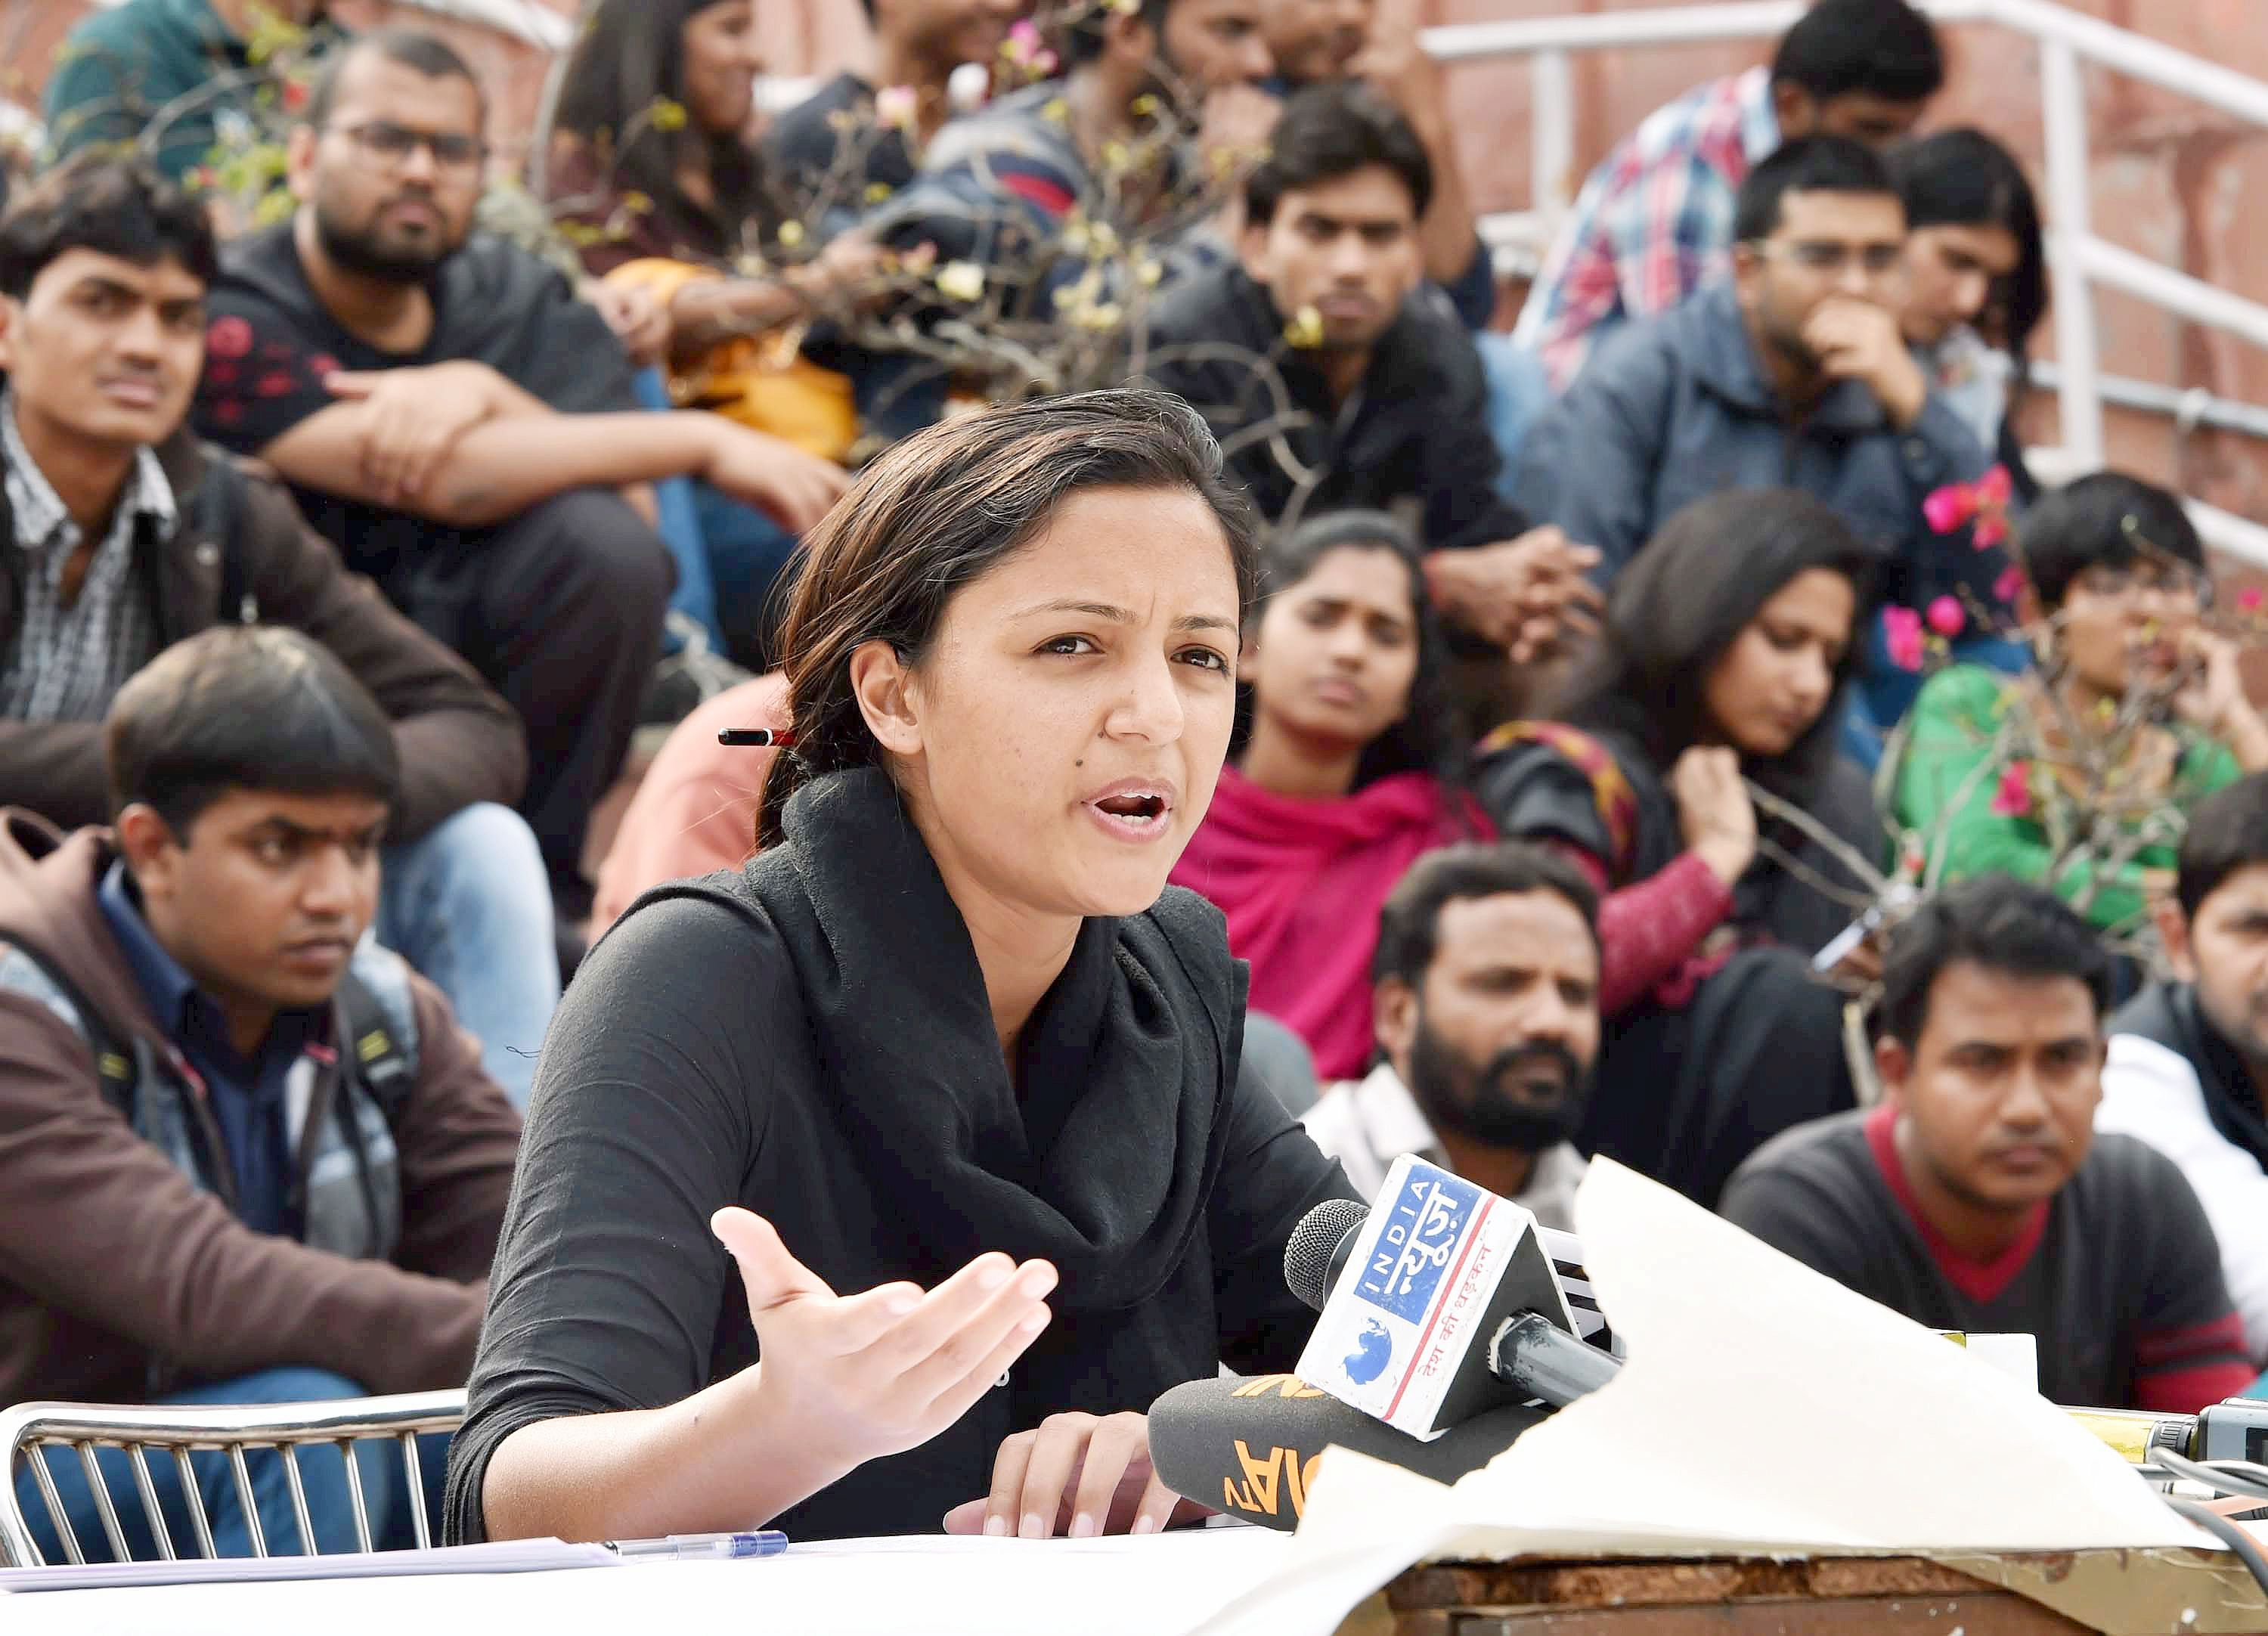 Sinead O'Connor, Shehla Rashid and the Only 'Good Muslims'